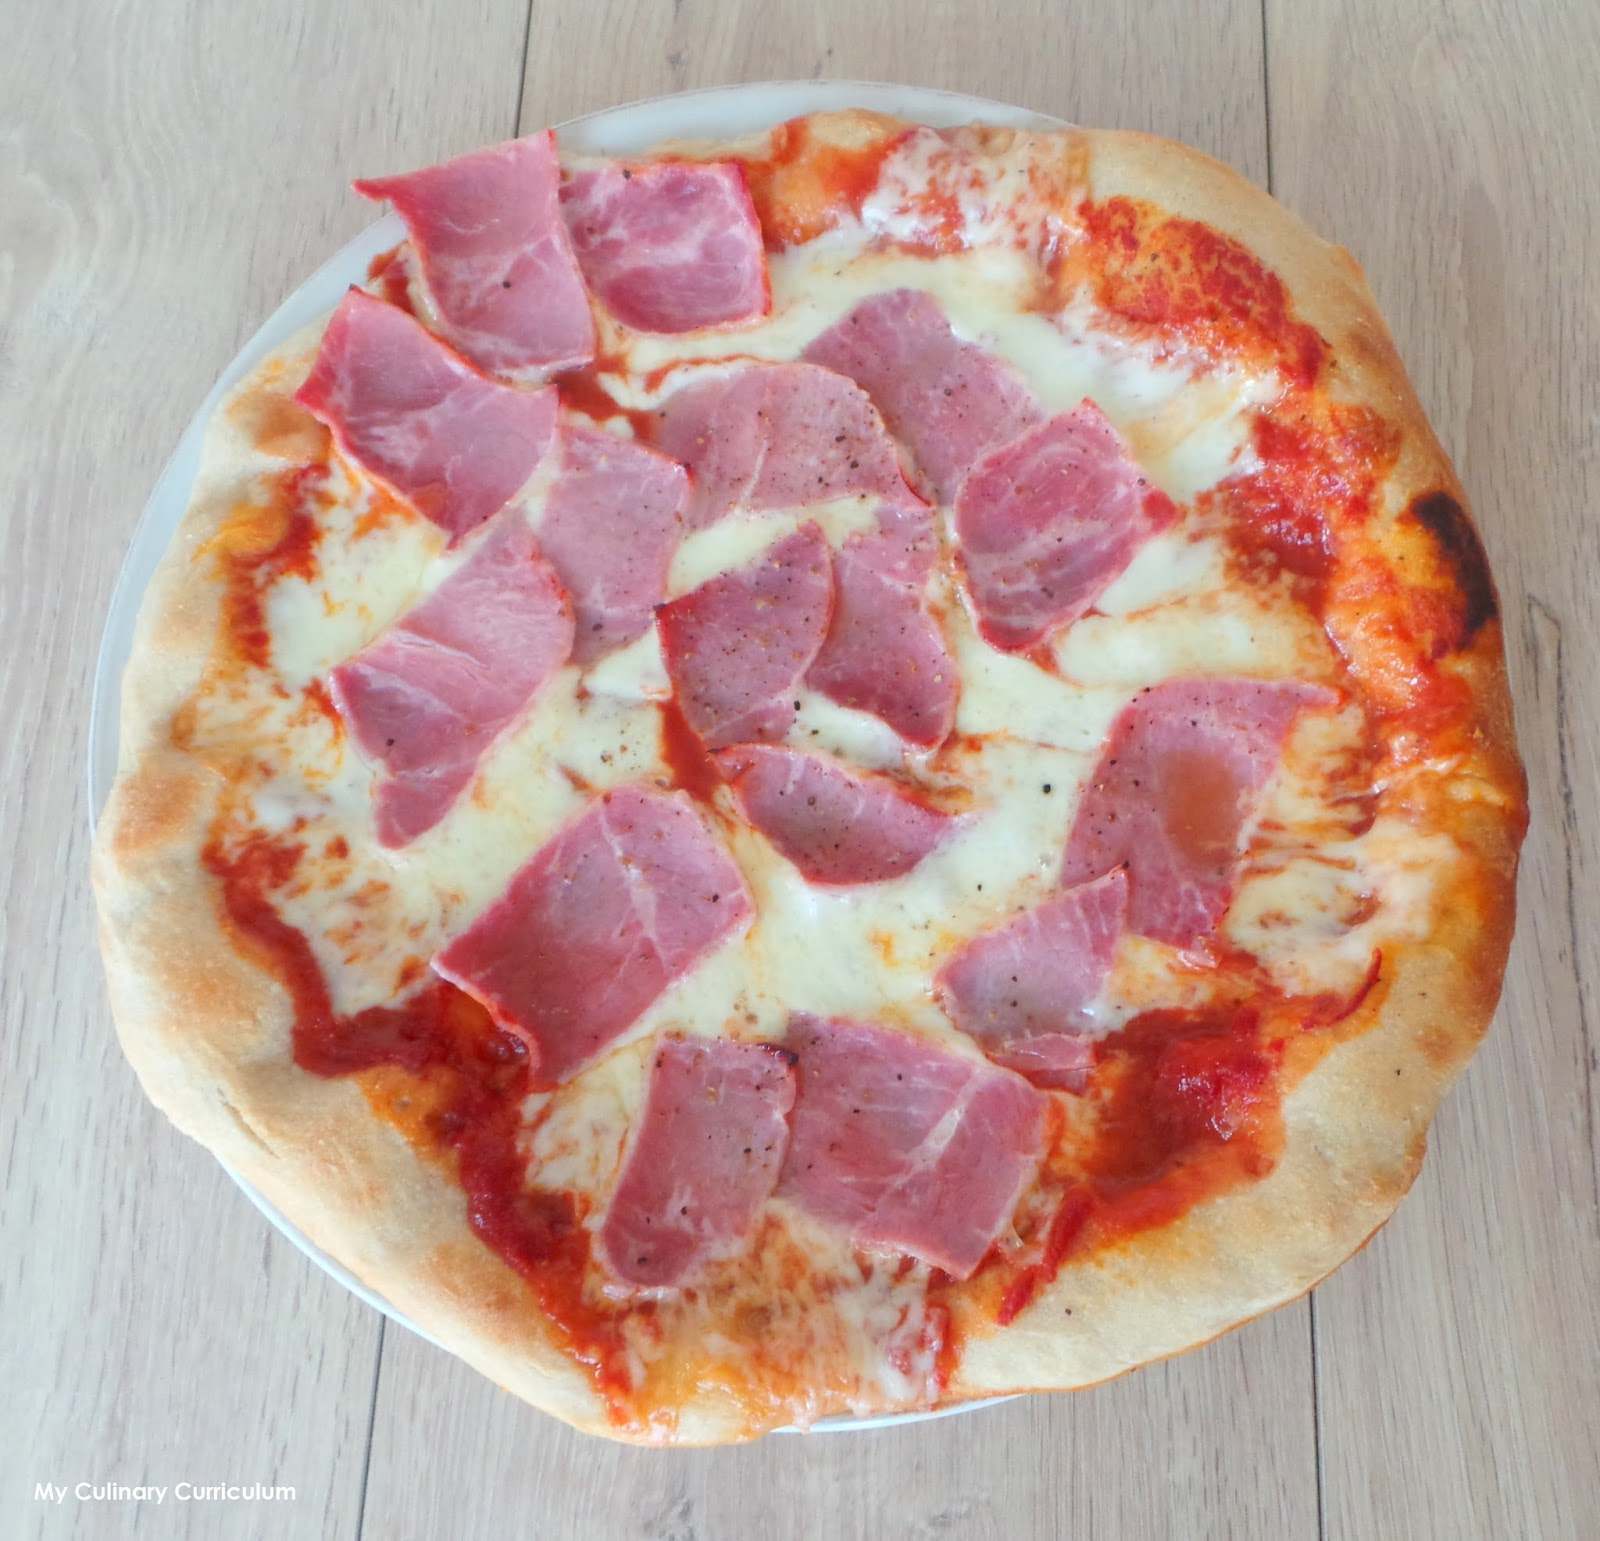 my culinary curriculum p te pizza maison recette d 39 eric kayser homemade pizza dough. Black Bedroom Furniture Sets. Home Design Ideas